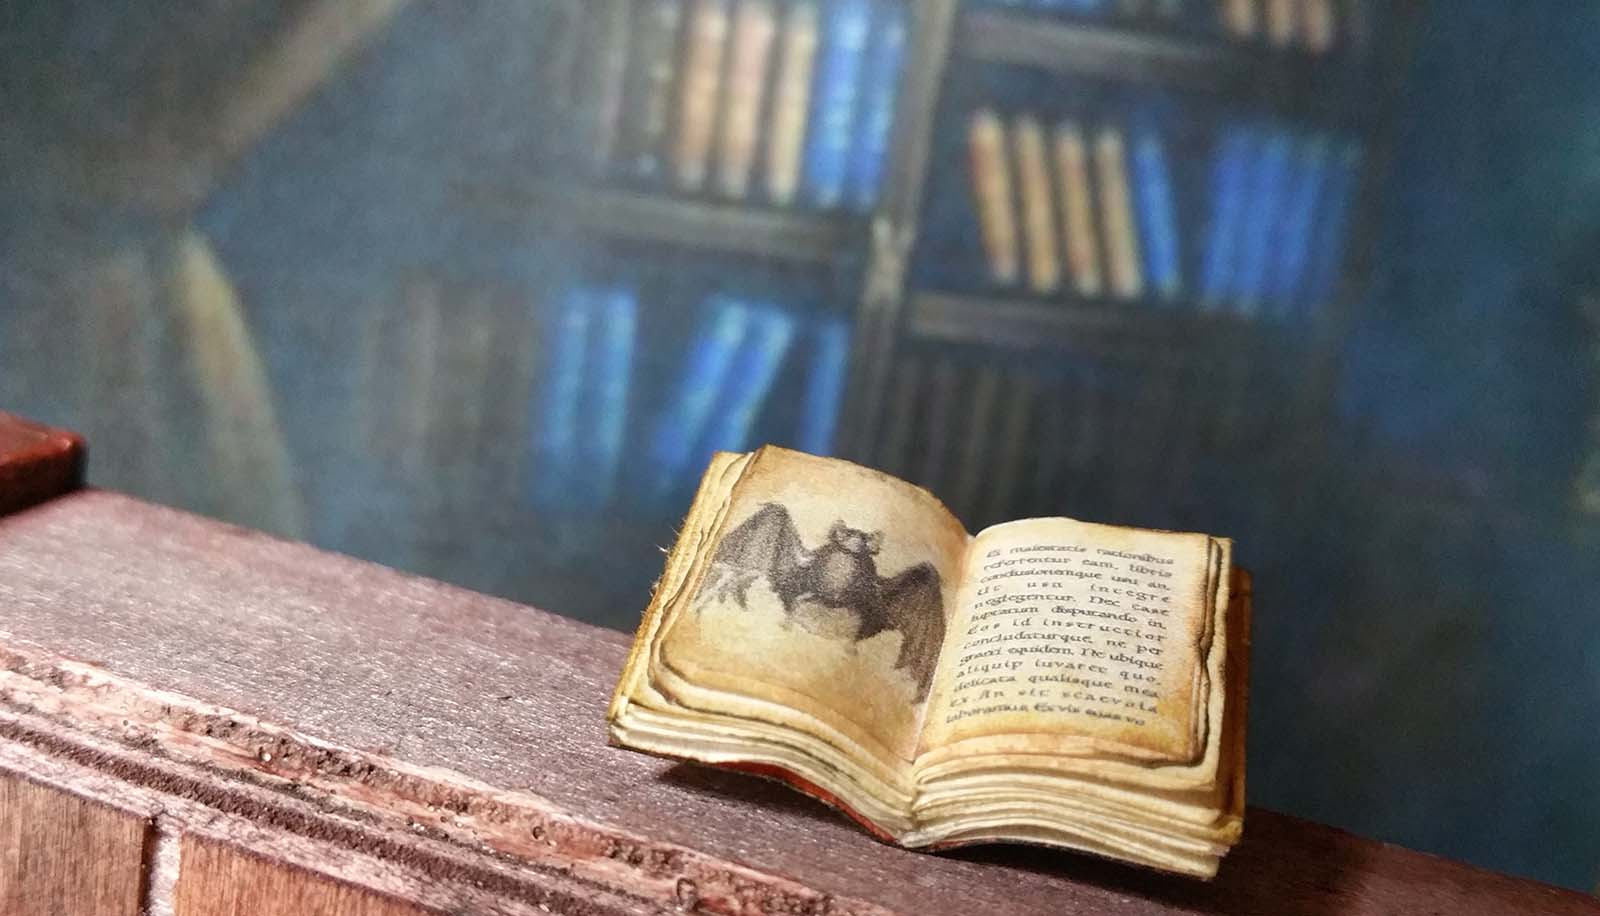 Miniature tiny open book with bat